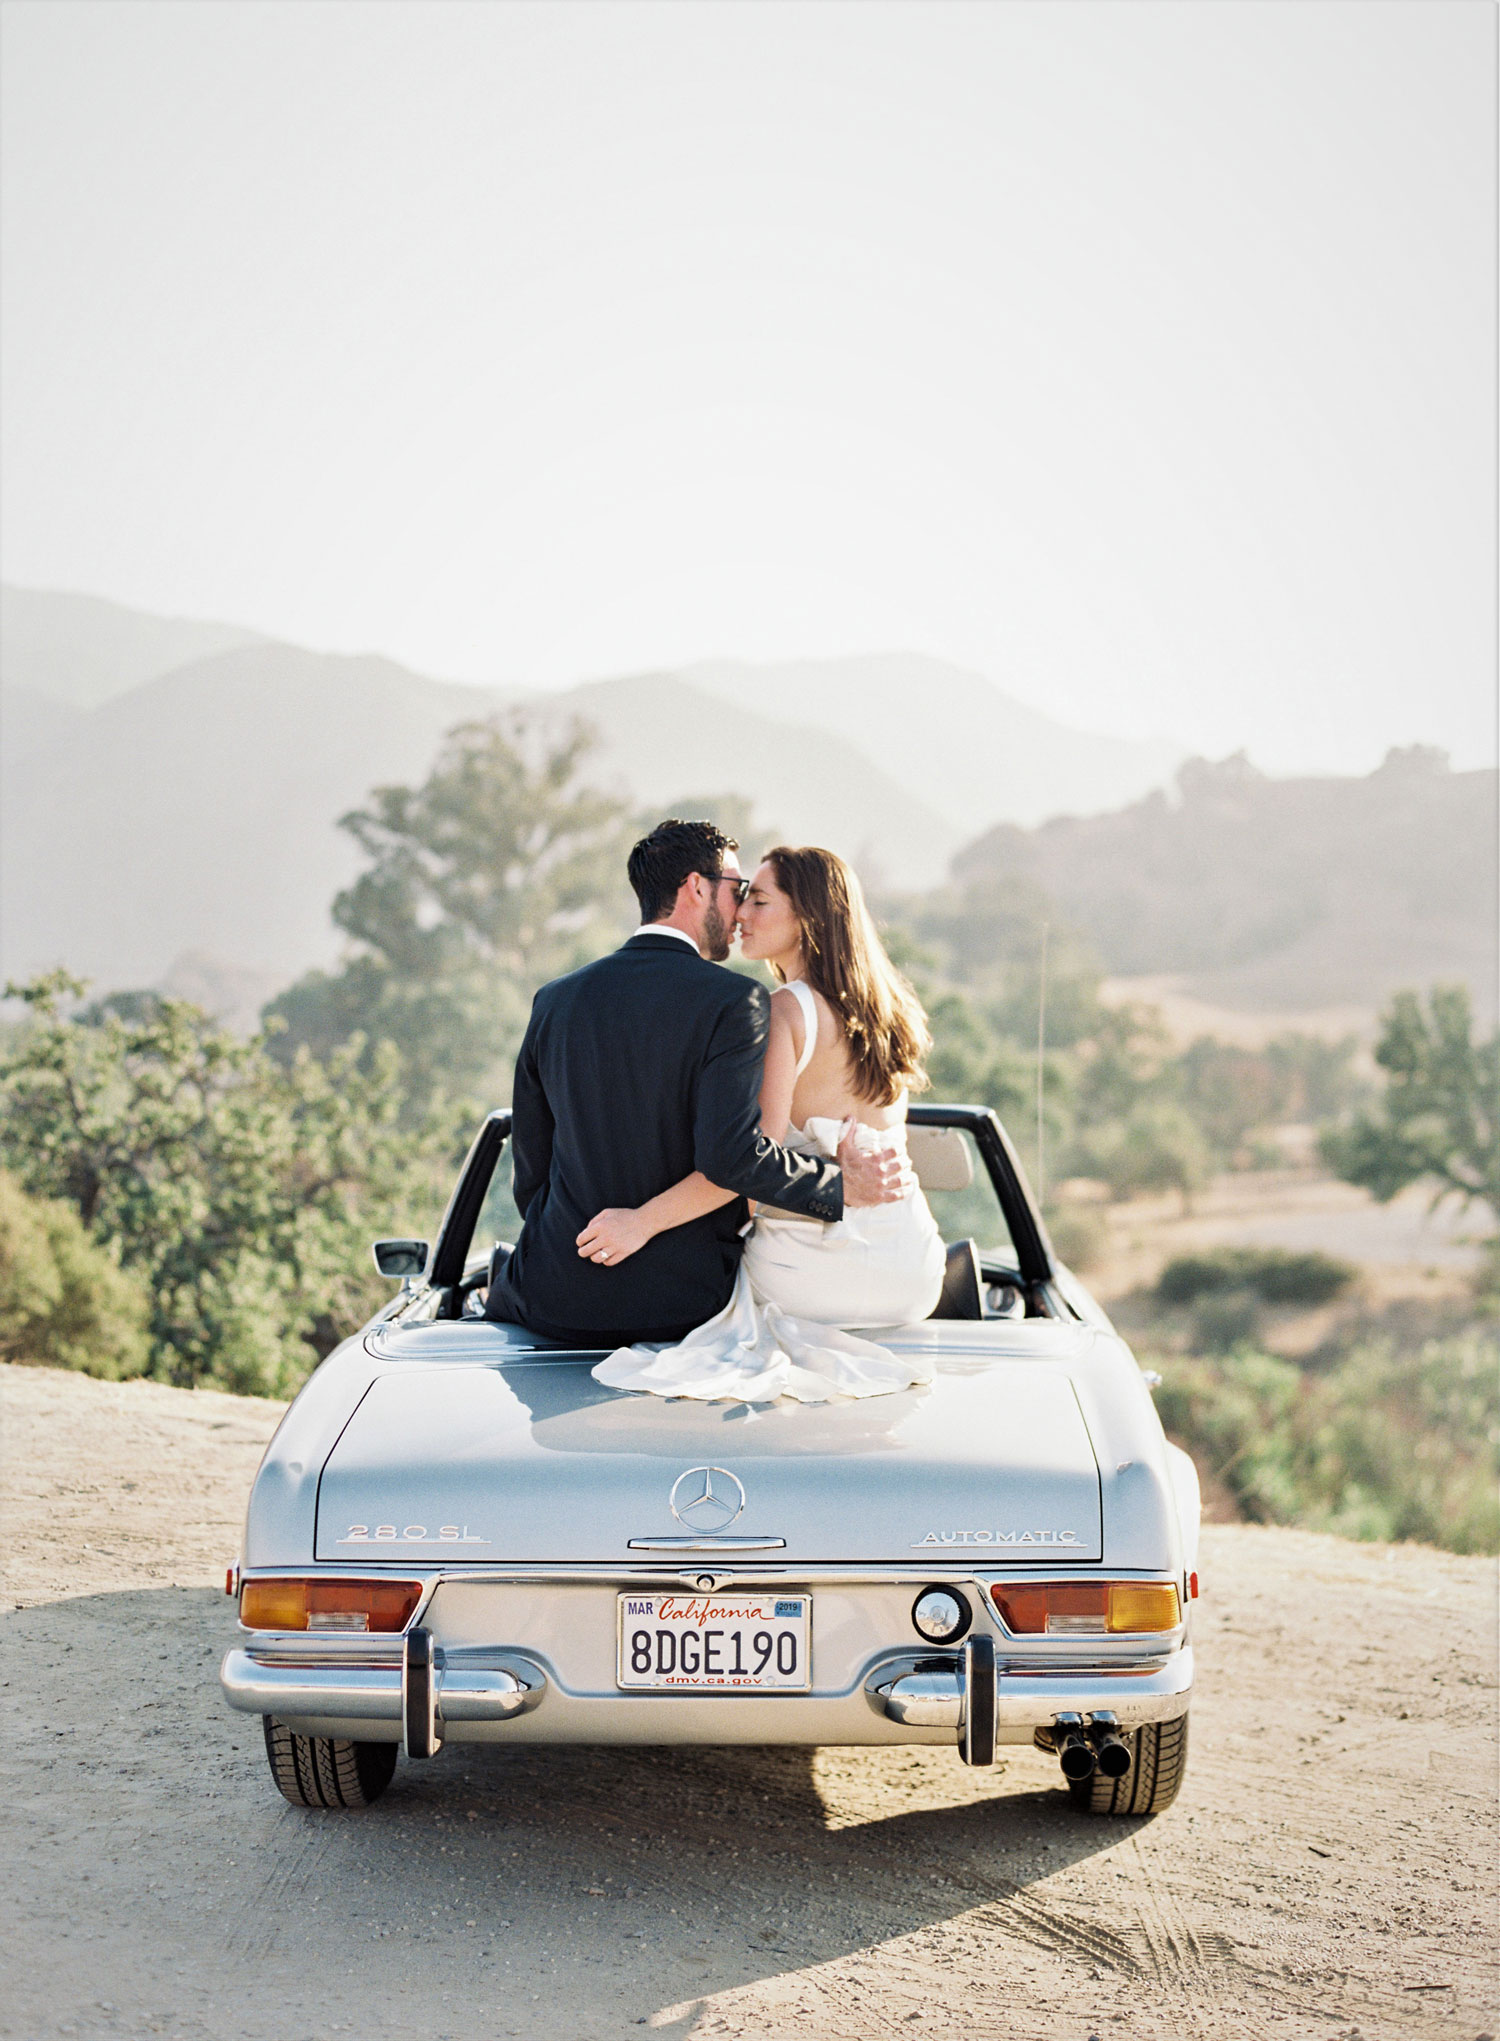 Engagement shoot photo ideas malibu classic car vintage mustang convertible kiss on back of car